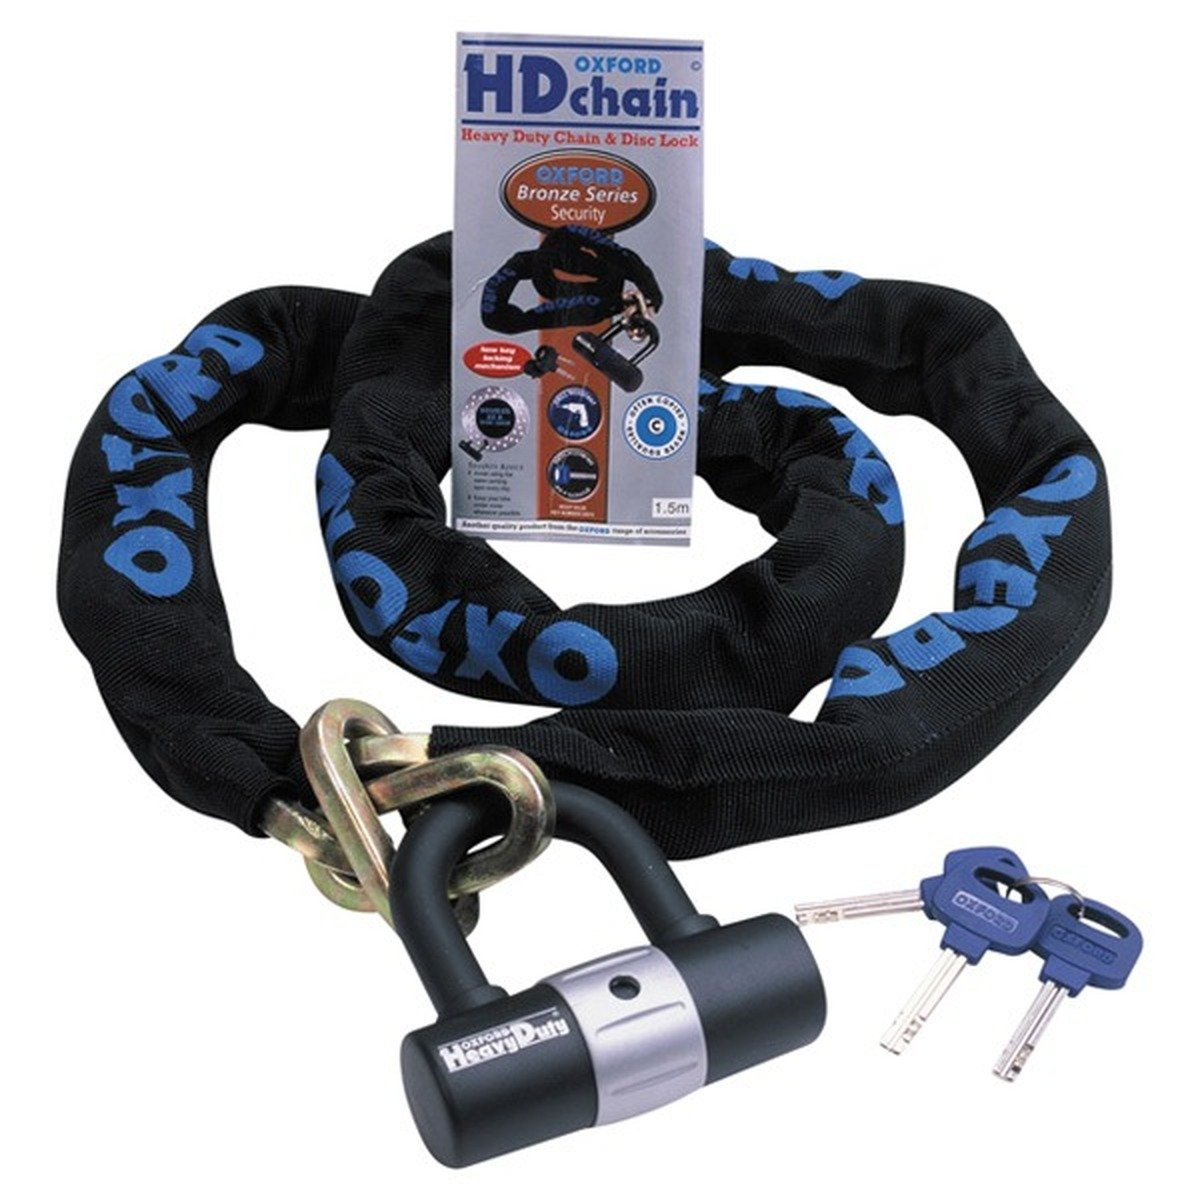 Oxford Products 1.5M Heavy Duty Chain Lock